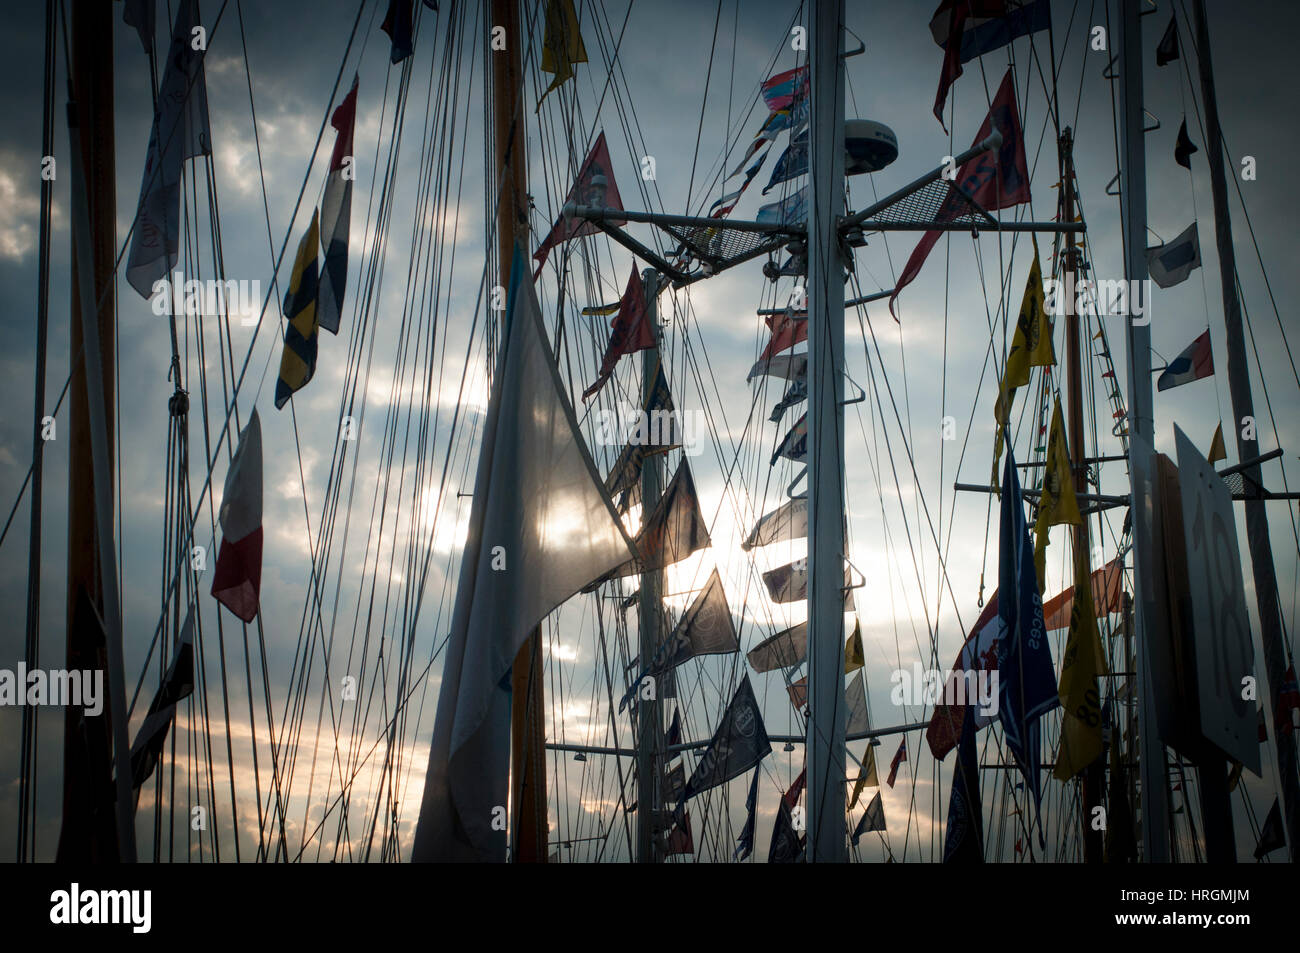 Ships flags at sunset. Tall ship races 2014 - Bergen, Norway. - Stock Image